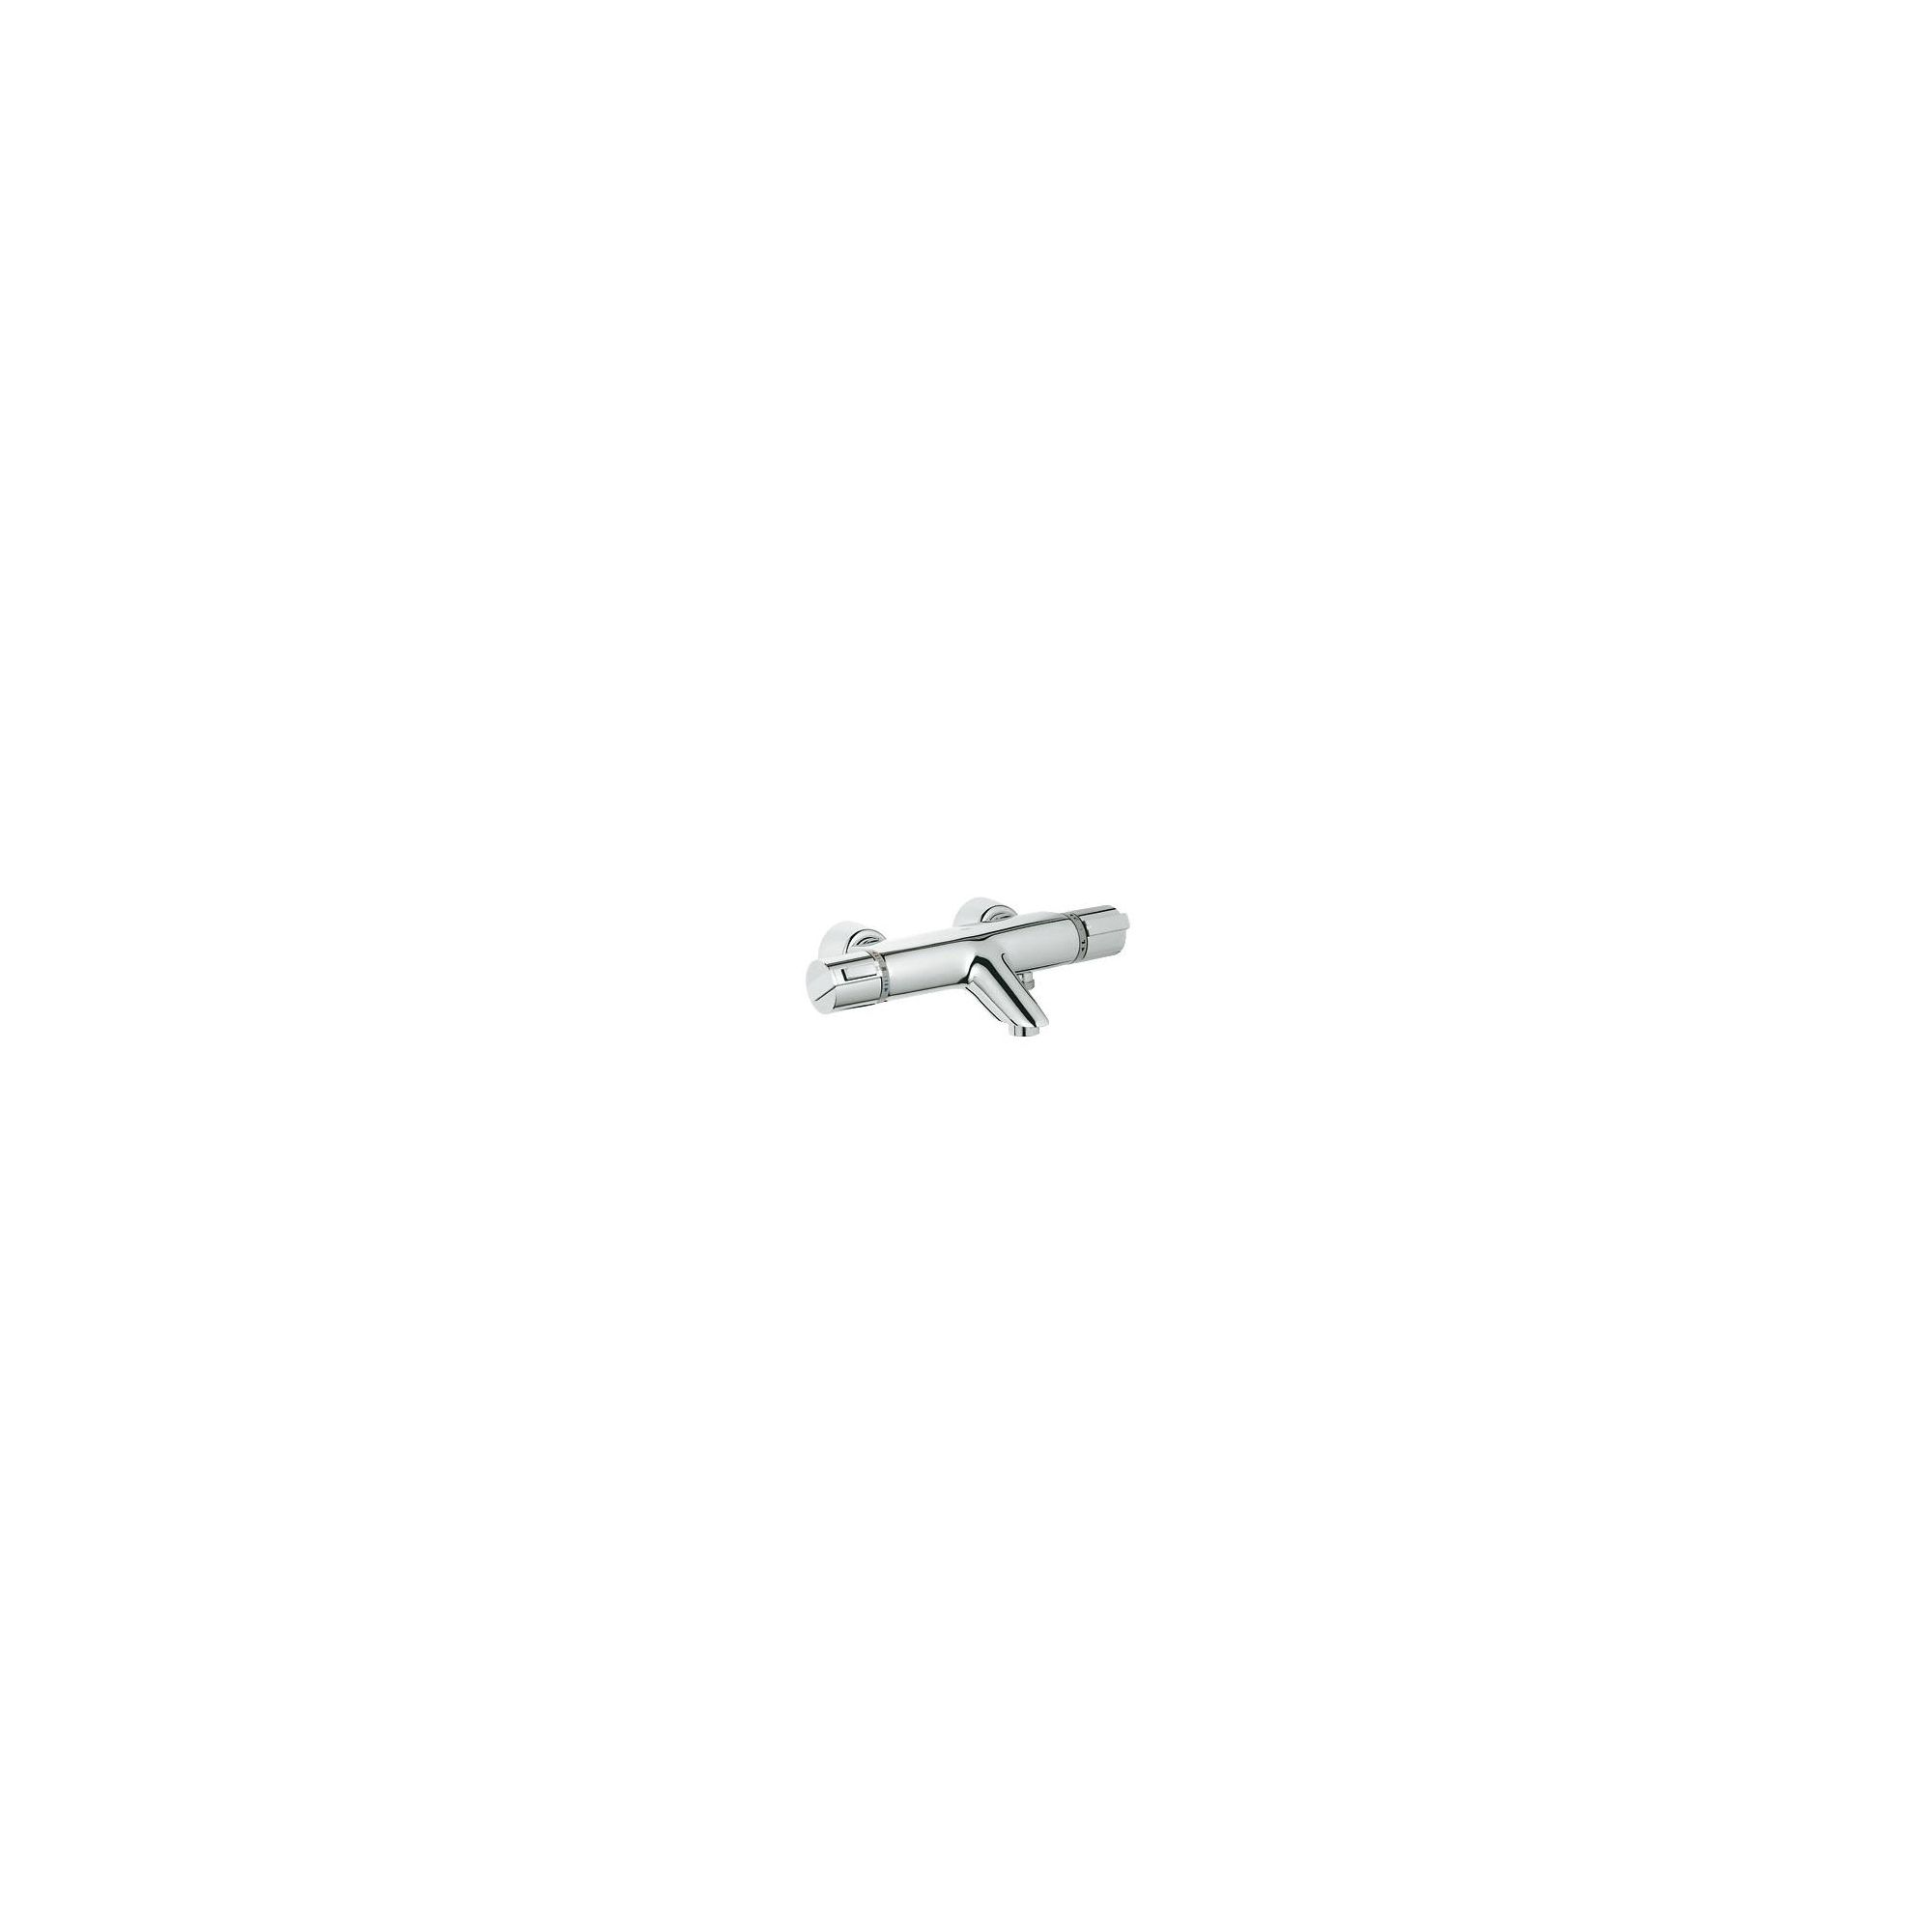 Grohe Grohtherm 2000 Thermostatic Bath Shower Mixer Tap, Wall Mounted, Chrome at Tescos Direct